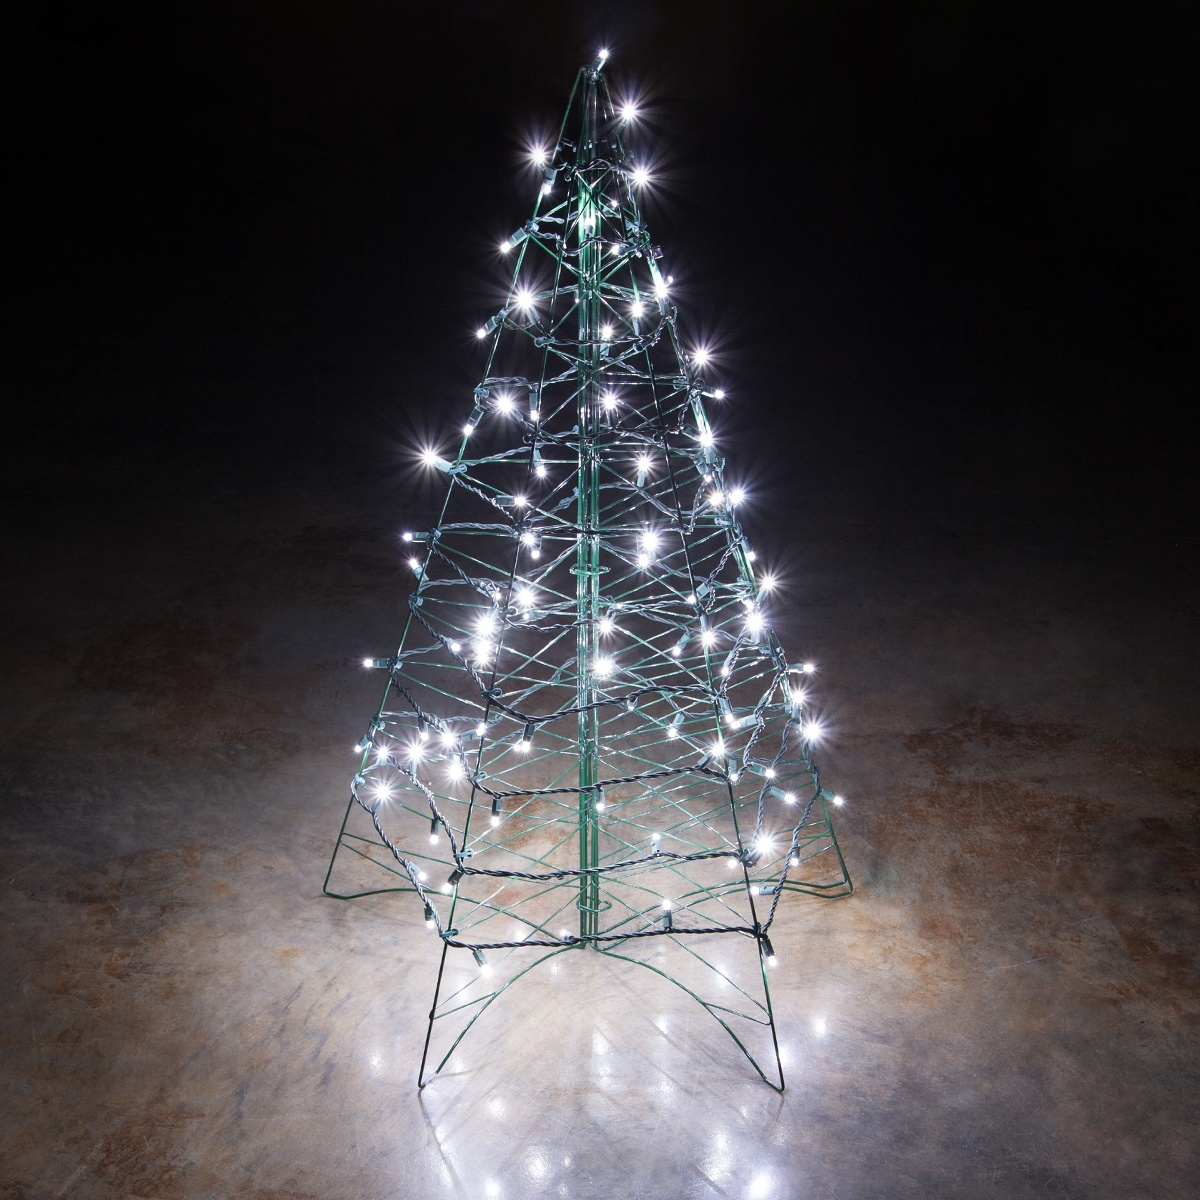 commercial outdoor led string lights - Commercial Outdoor Lighted Christmas Decorations